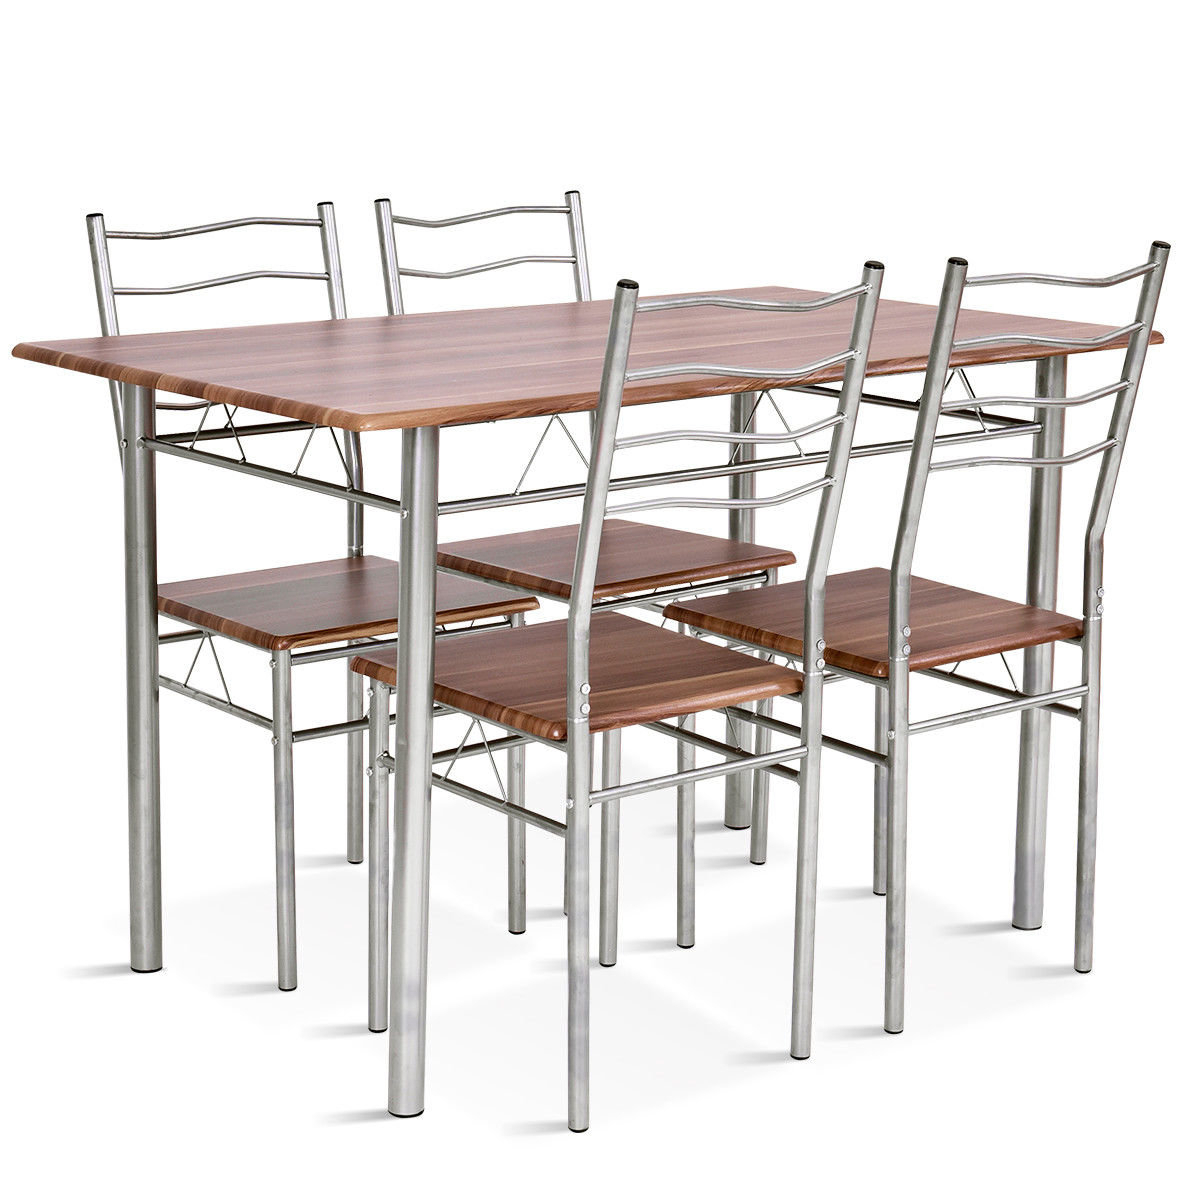 Conover 5 Piece Dining Sets Throughout Well Known Winston Porter Casiano 5 Piece Dining Set & Reviews (View 10 of 25)